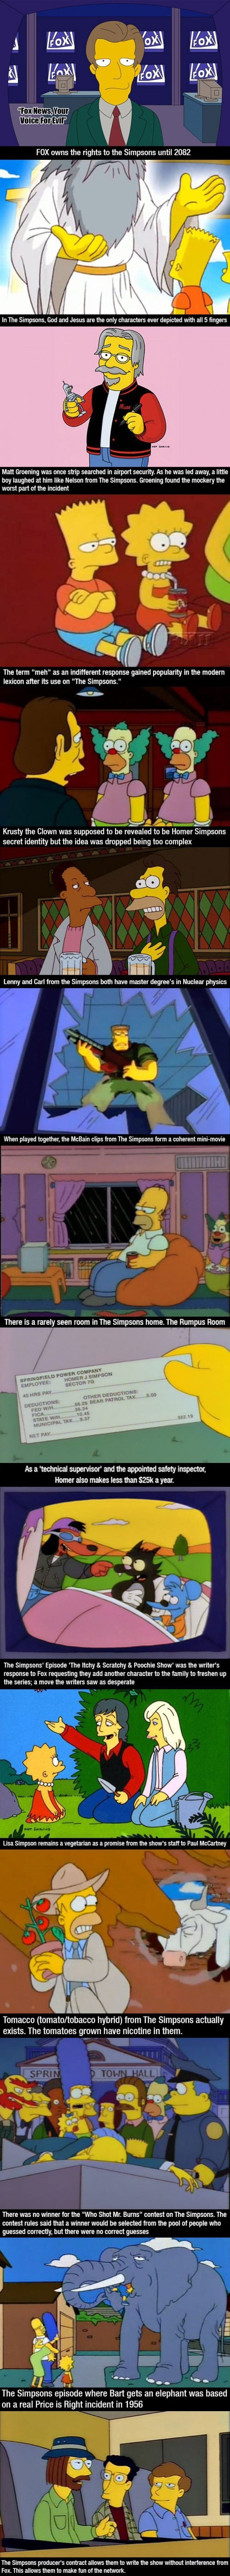 Simpsons facts